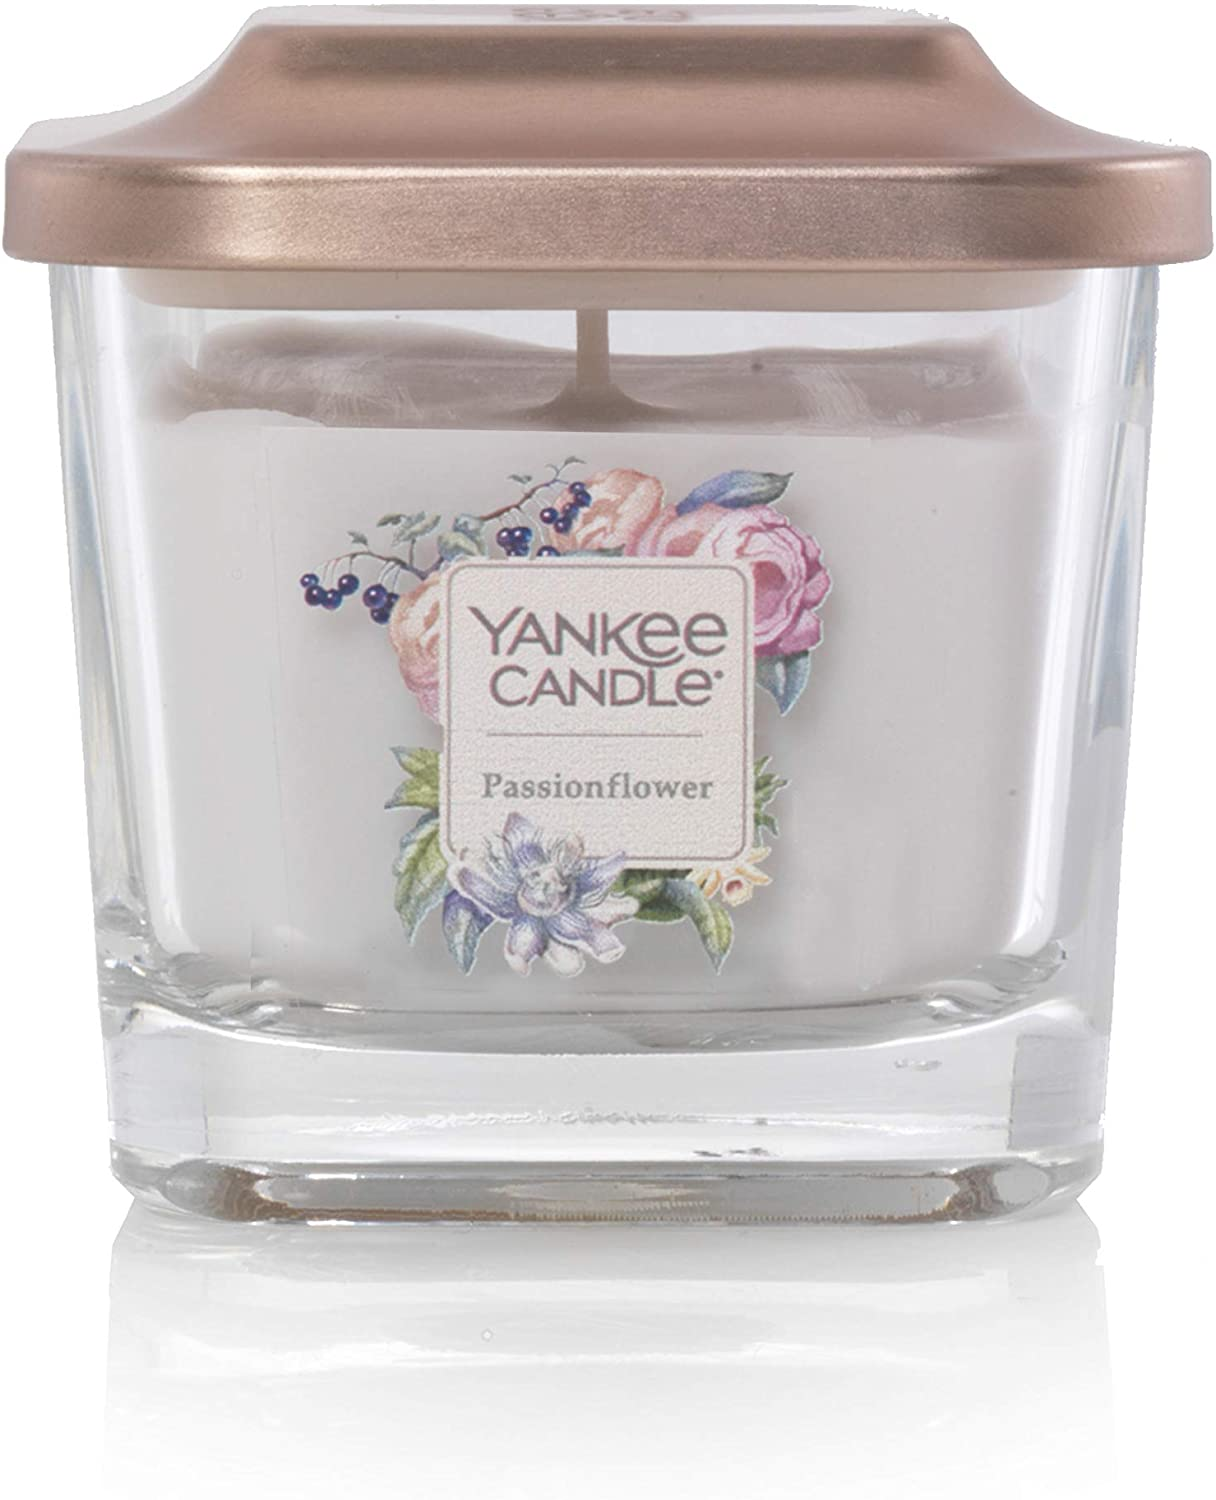 Yankee Candle Elevation Collection with Platform Lid Passionflower Scented Candle, Small 1-Wick, 28 Hour Burn Time